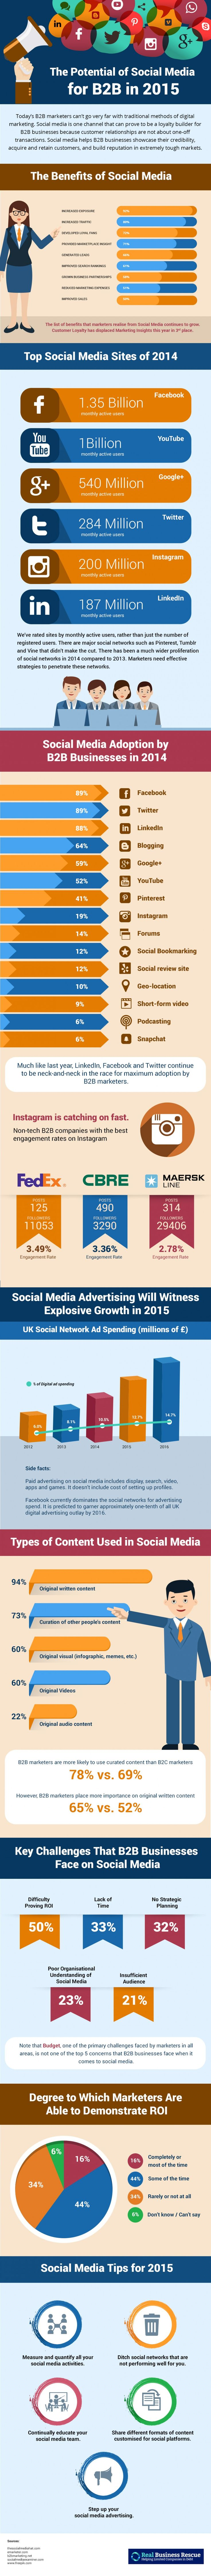 The Potential of Social Media for B2B in 2015 [Infographic]